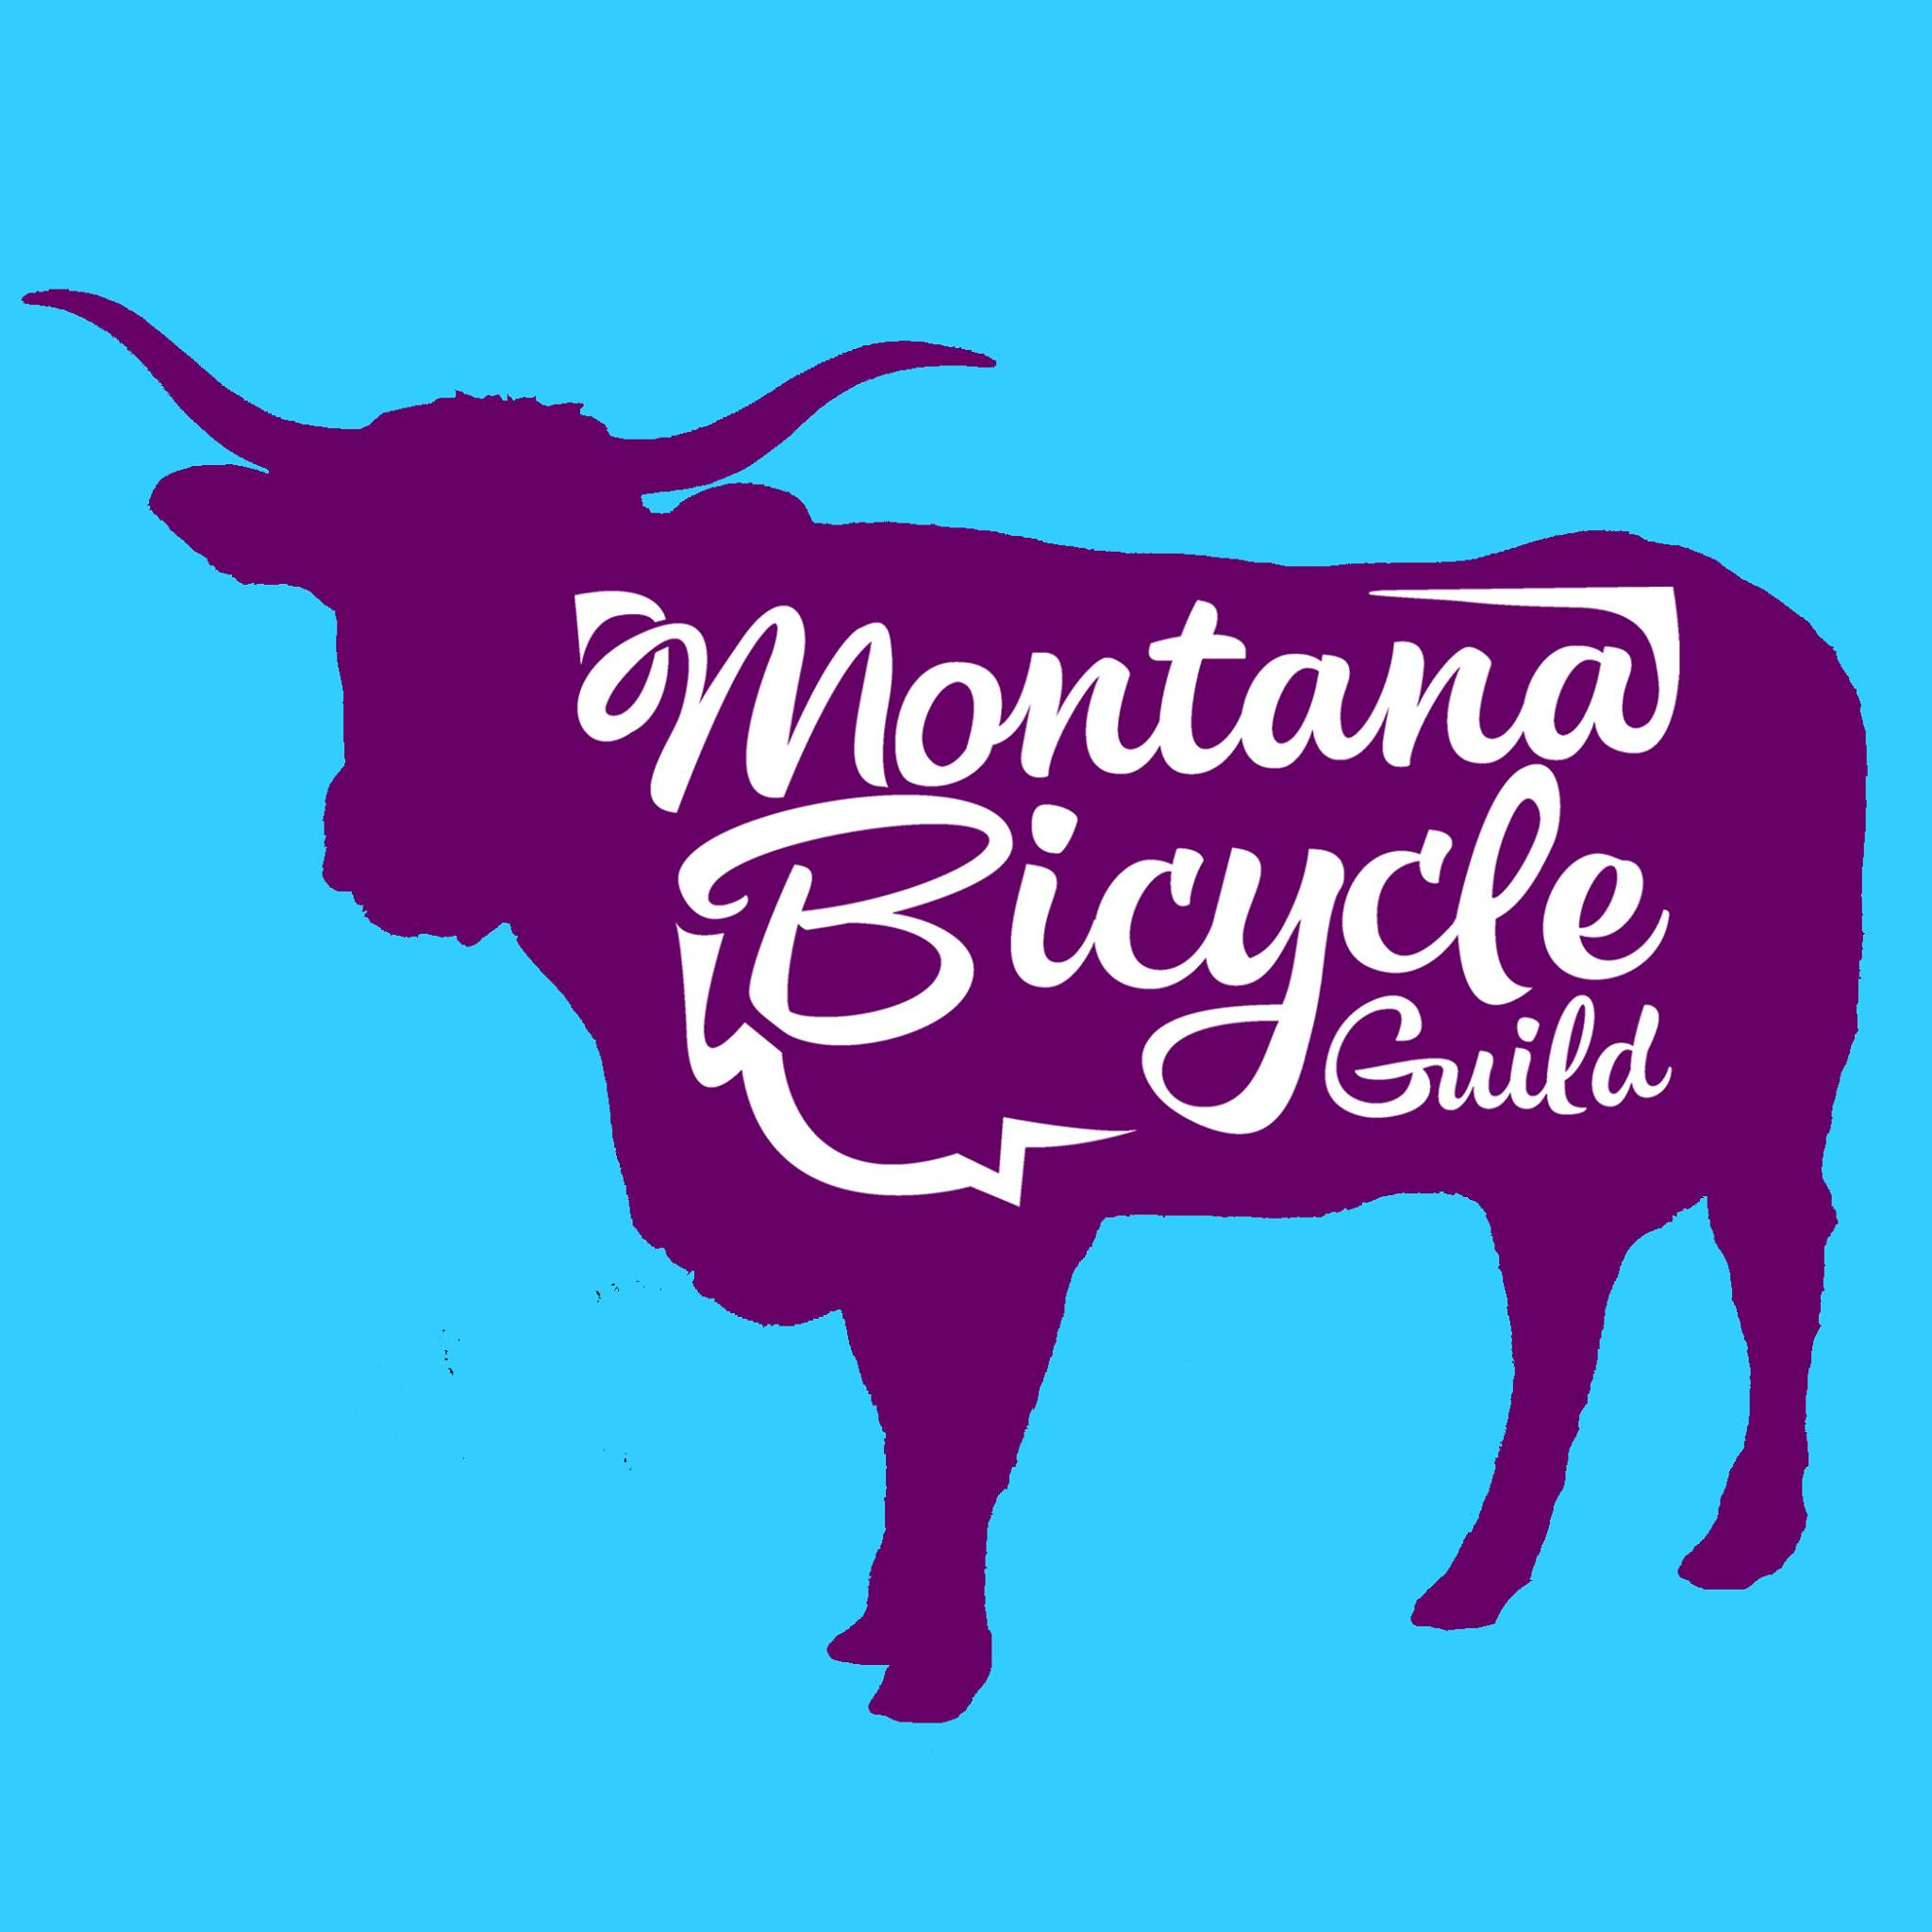 Montana Bicycle Guild - In their words, here is what the guild is: